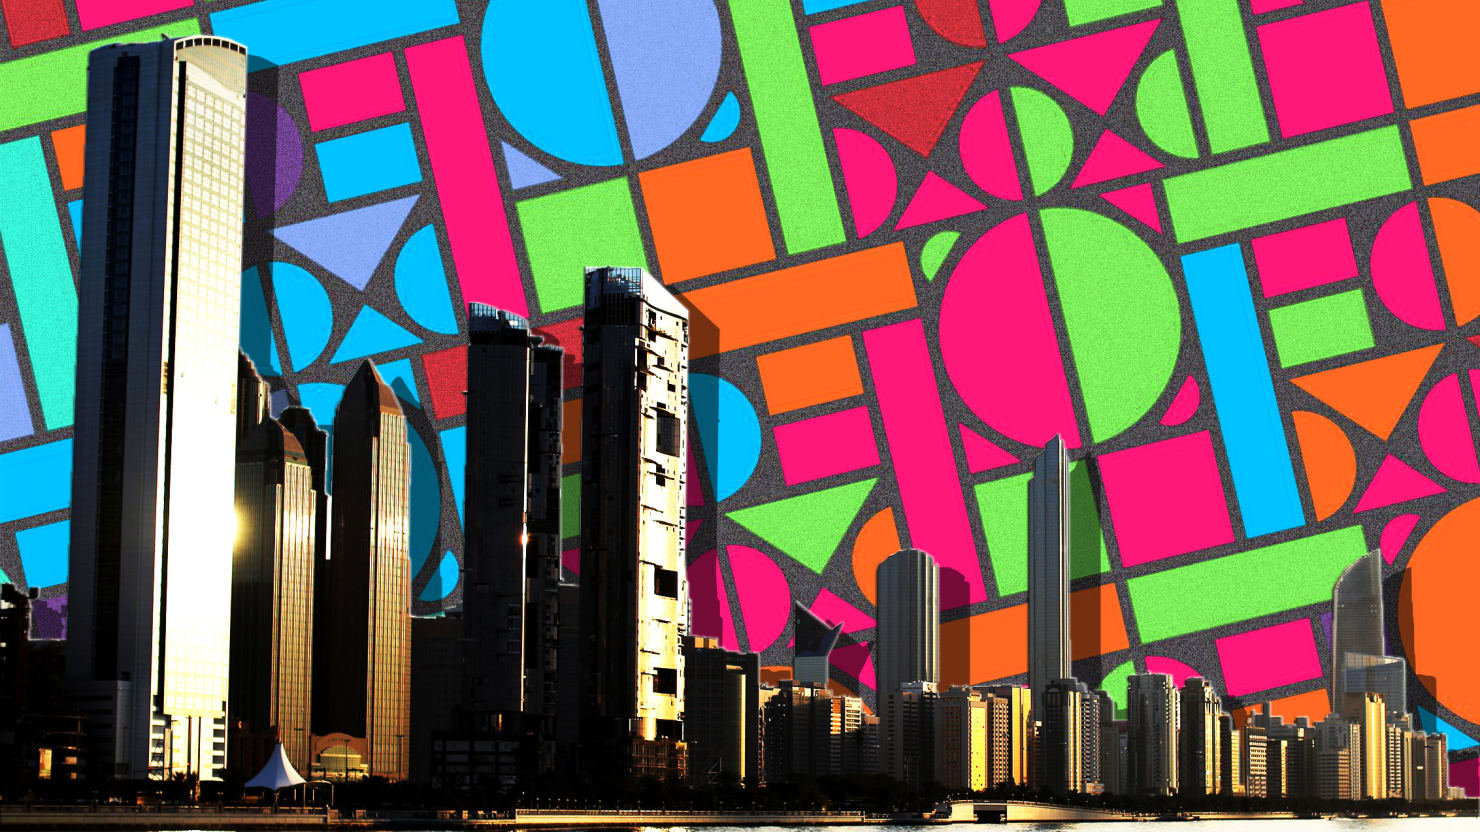 why has the uae excluded artists from its abu dhabi culture summit